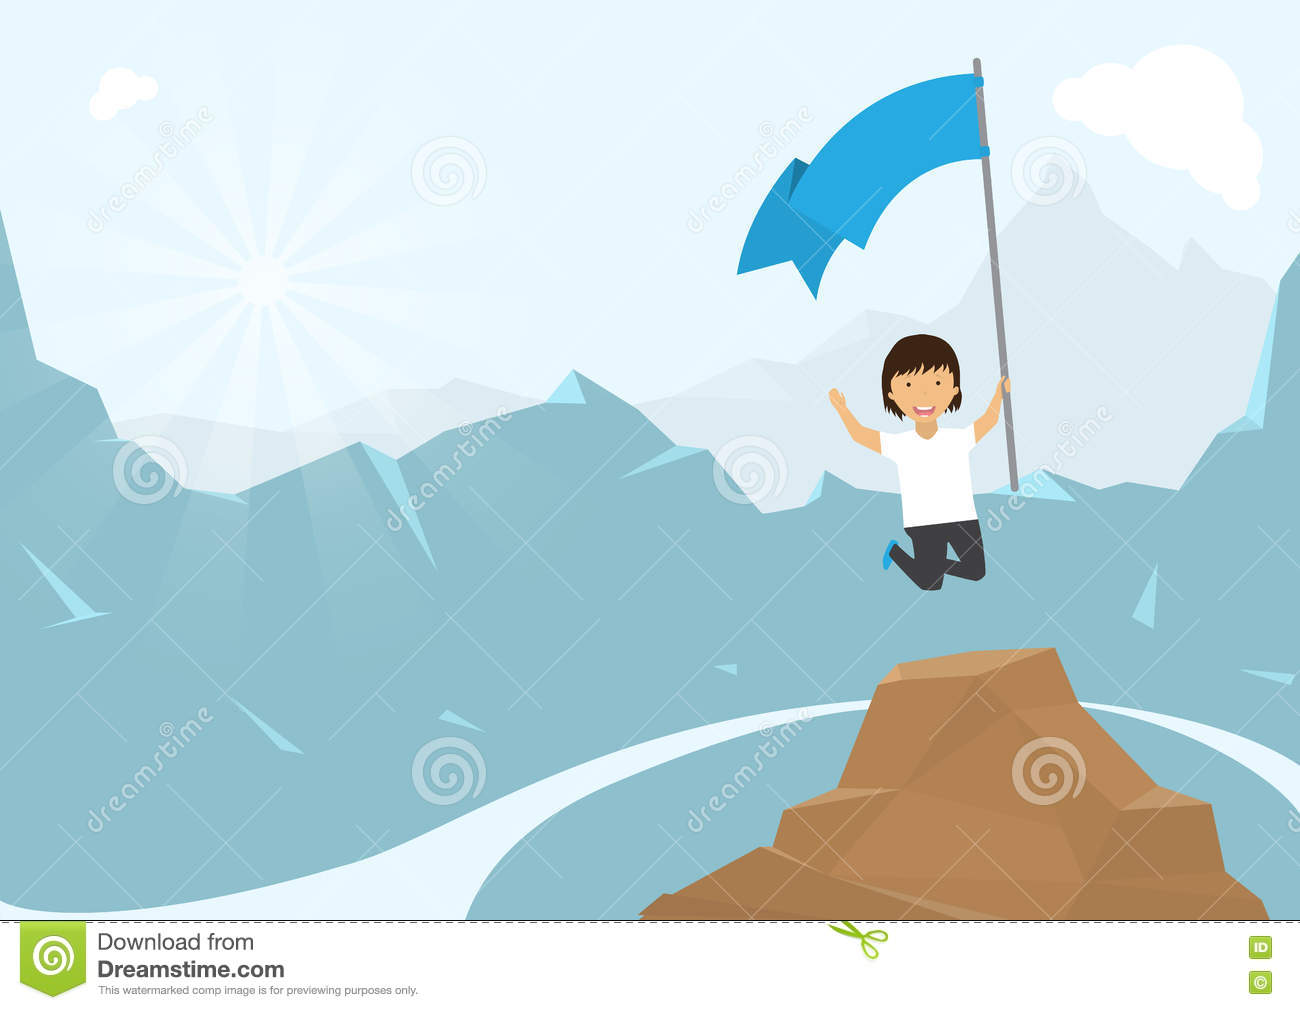 essay on joy of climbing mountain The gods had condemned sisyphus to ceaselessly rolling a rock to the top of a mountain,  it can also take place in joy this word is not too much.